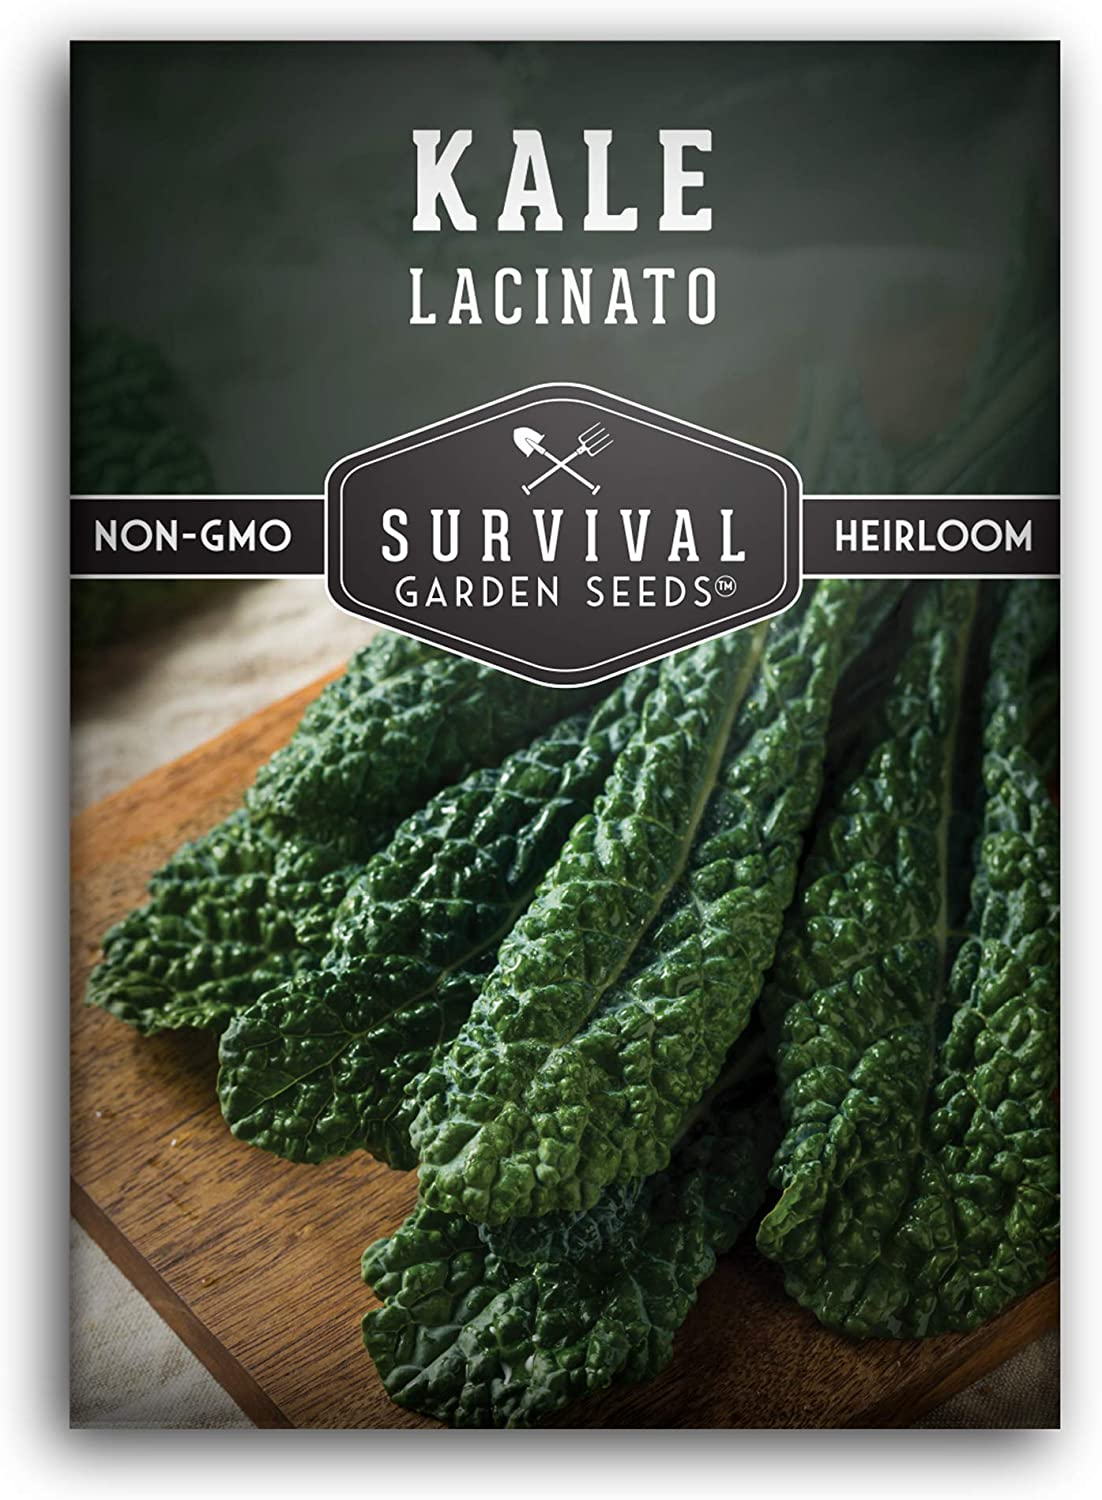 Survival Garden Seeds - Lacinato Kale Seed for Planting - Packet with Instructions to Plant and Grow Your Home Vegetable Garden - Non-GMO Heirloom Variety